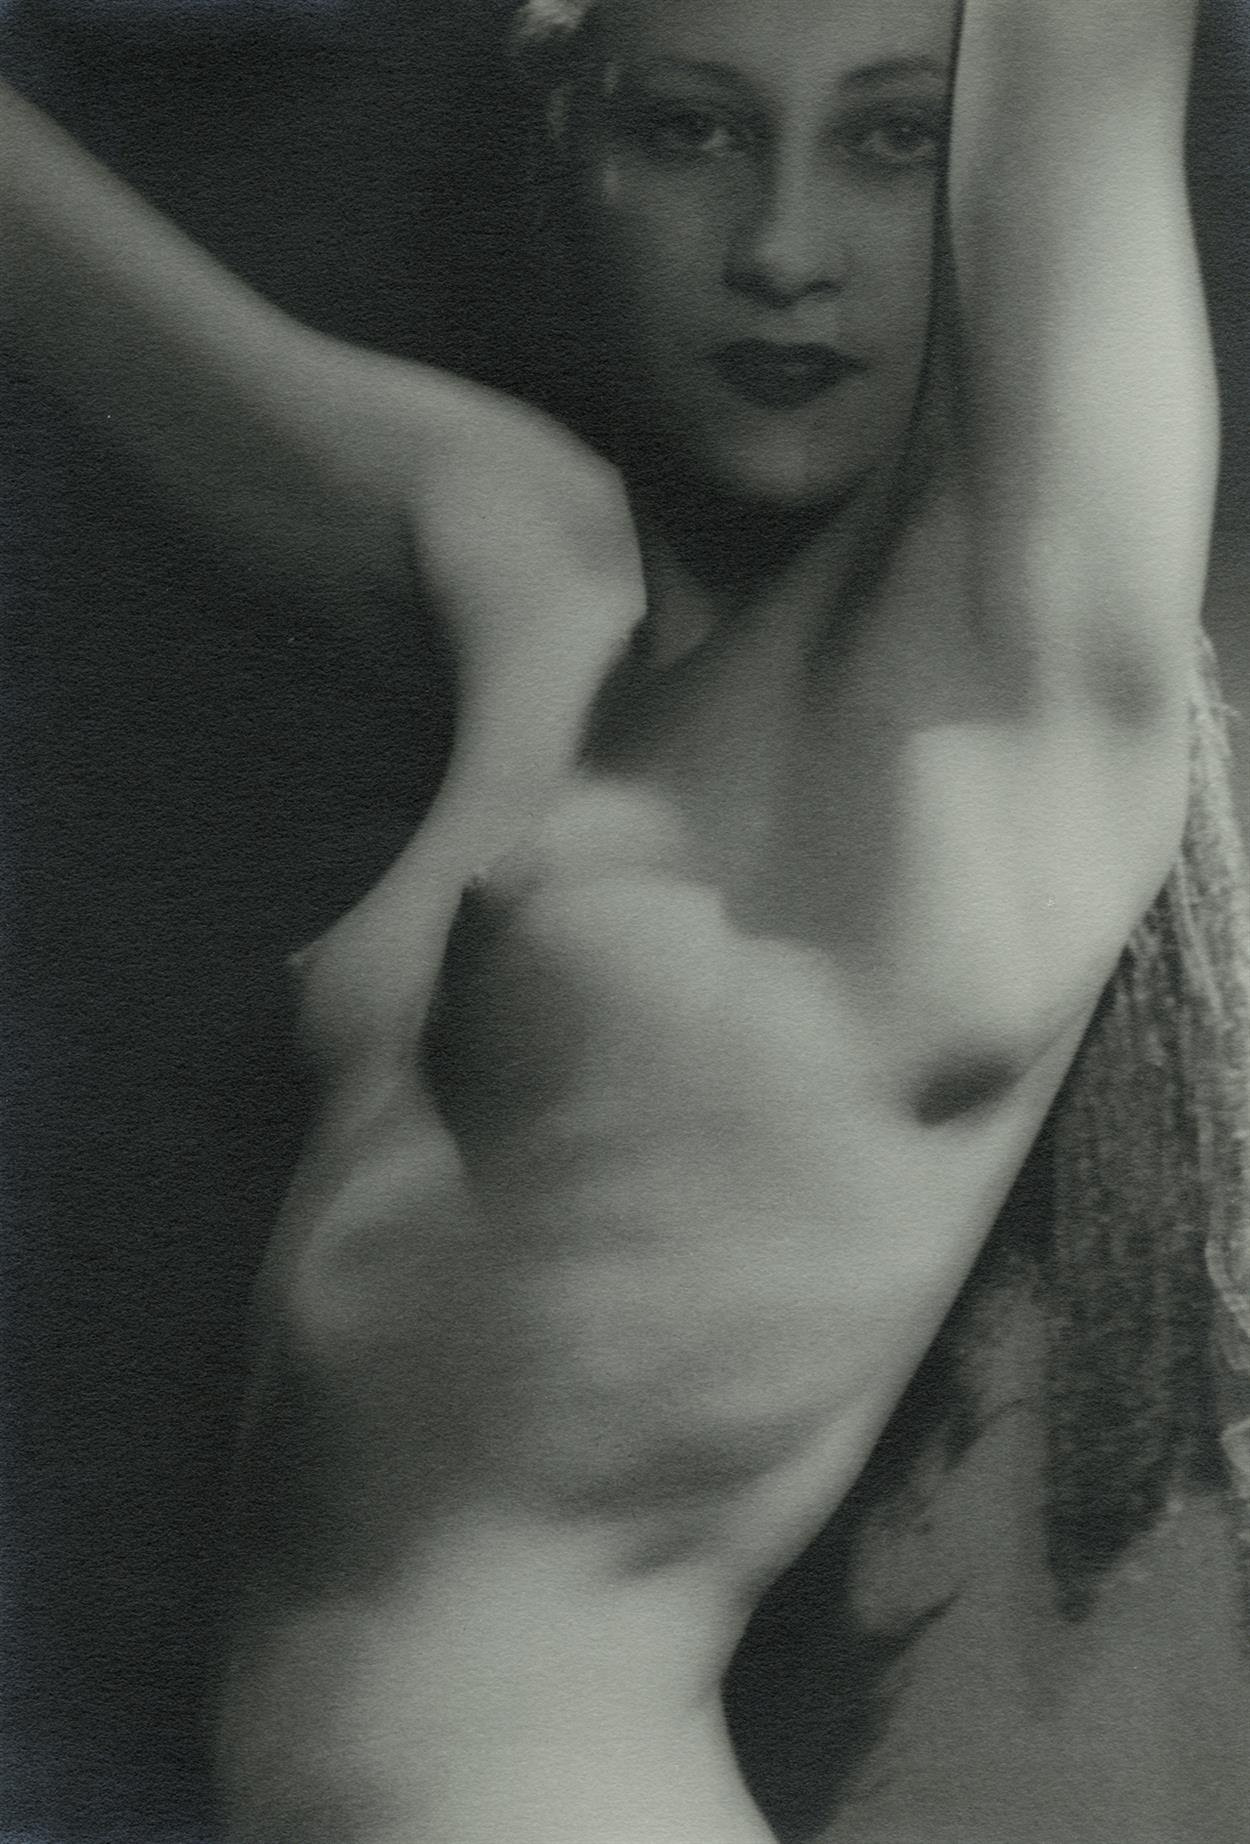 Man Ray, Nude 1927, Image courtesy of Howard Greenberg Gallery